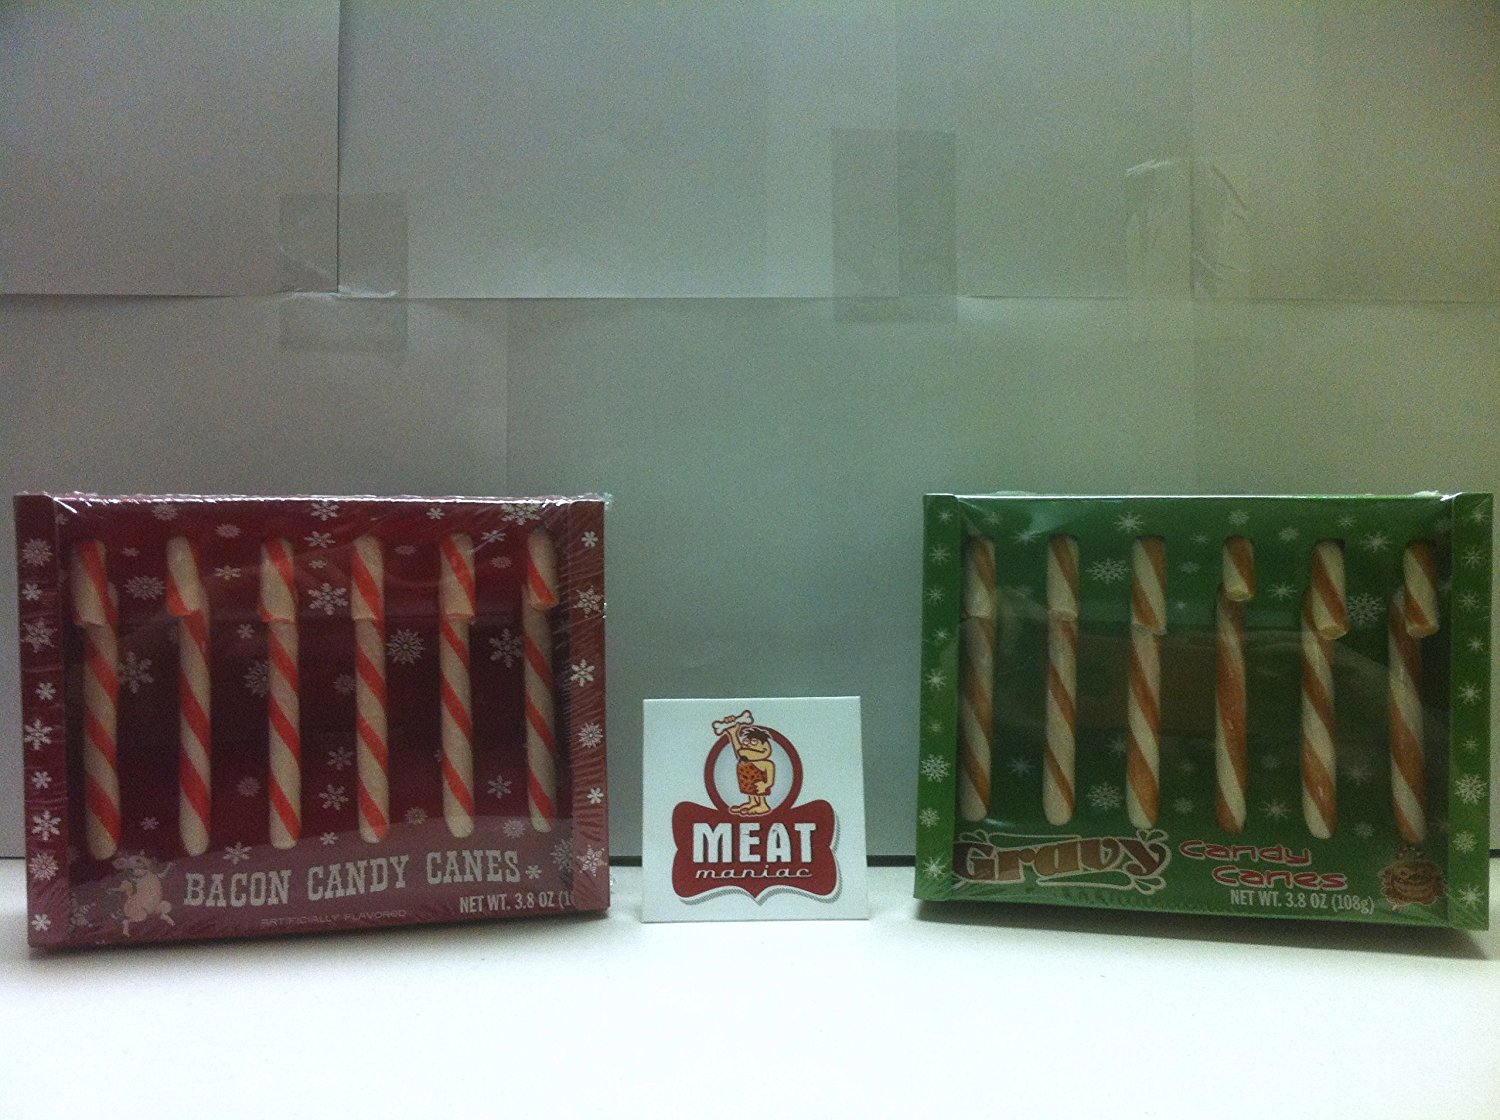 MEAT MANIAC Exotic Candy Canes Combo Gift Pack with Sticker- Bacon Candy Canes & Gravy Candy Canes